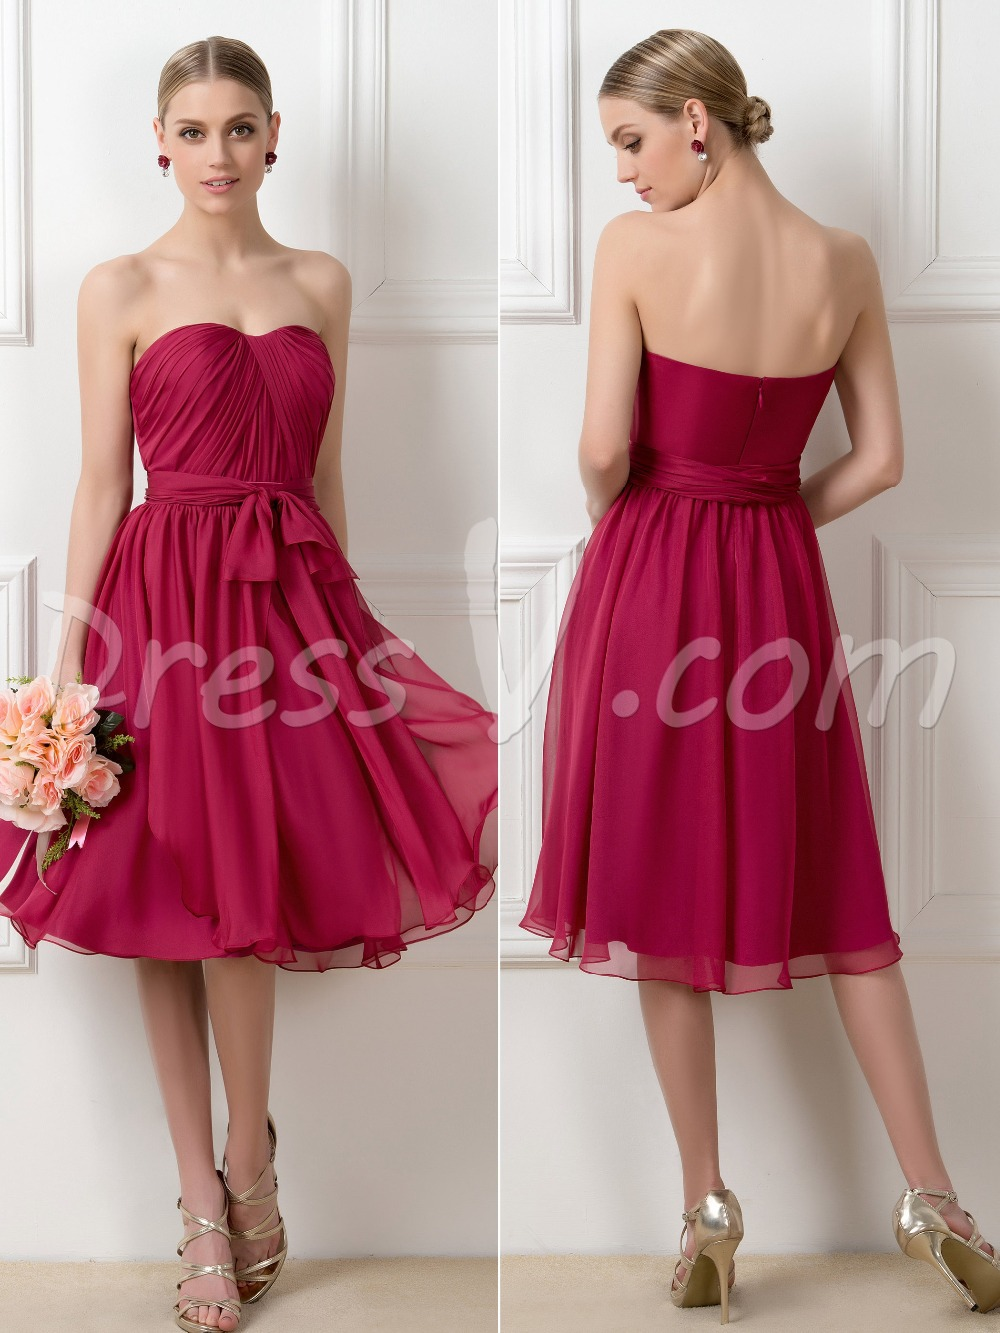 Cheap convertible straps burgundy bridesmaid dresses 2015 knee cheap convertible straps burgundy bridesmaid dresses 2015 knee length summer wedding party guest dresses maid of honor dresses in bridesmaid dresses from ombrellifo Image collections